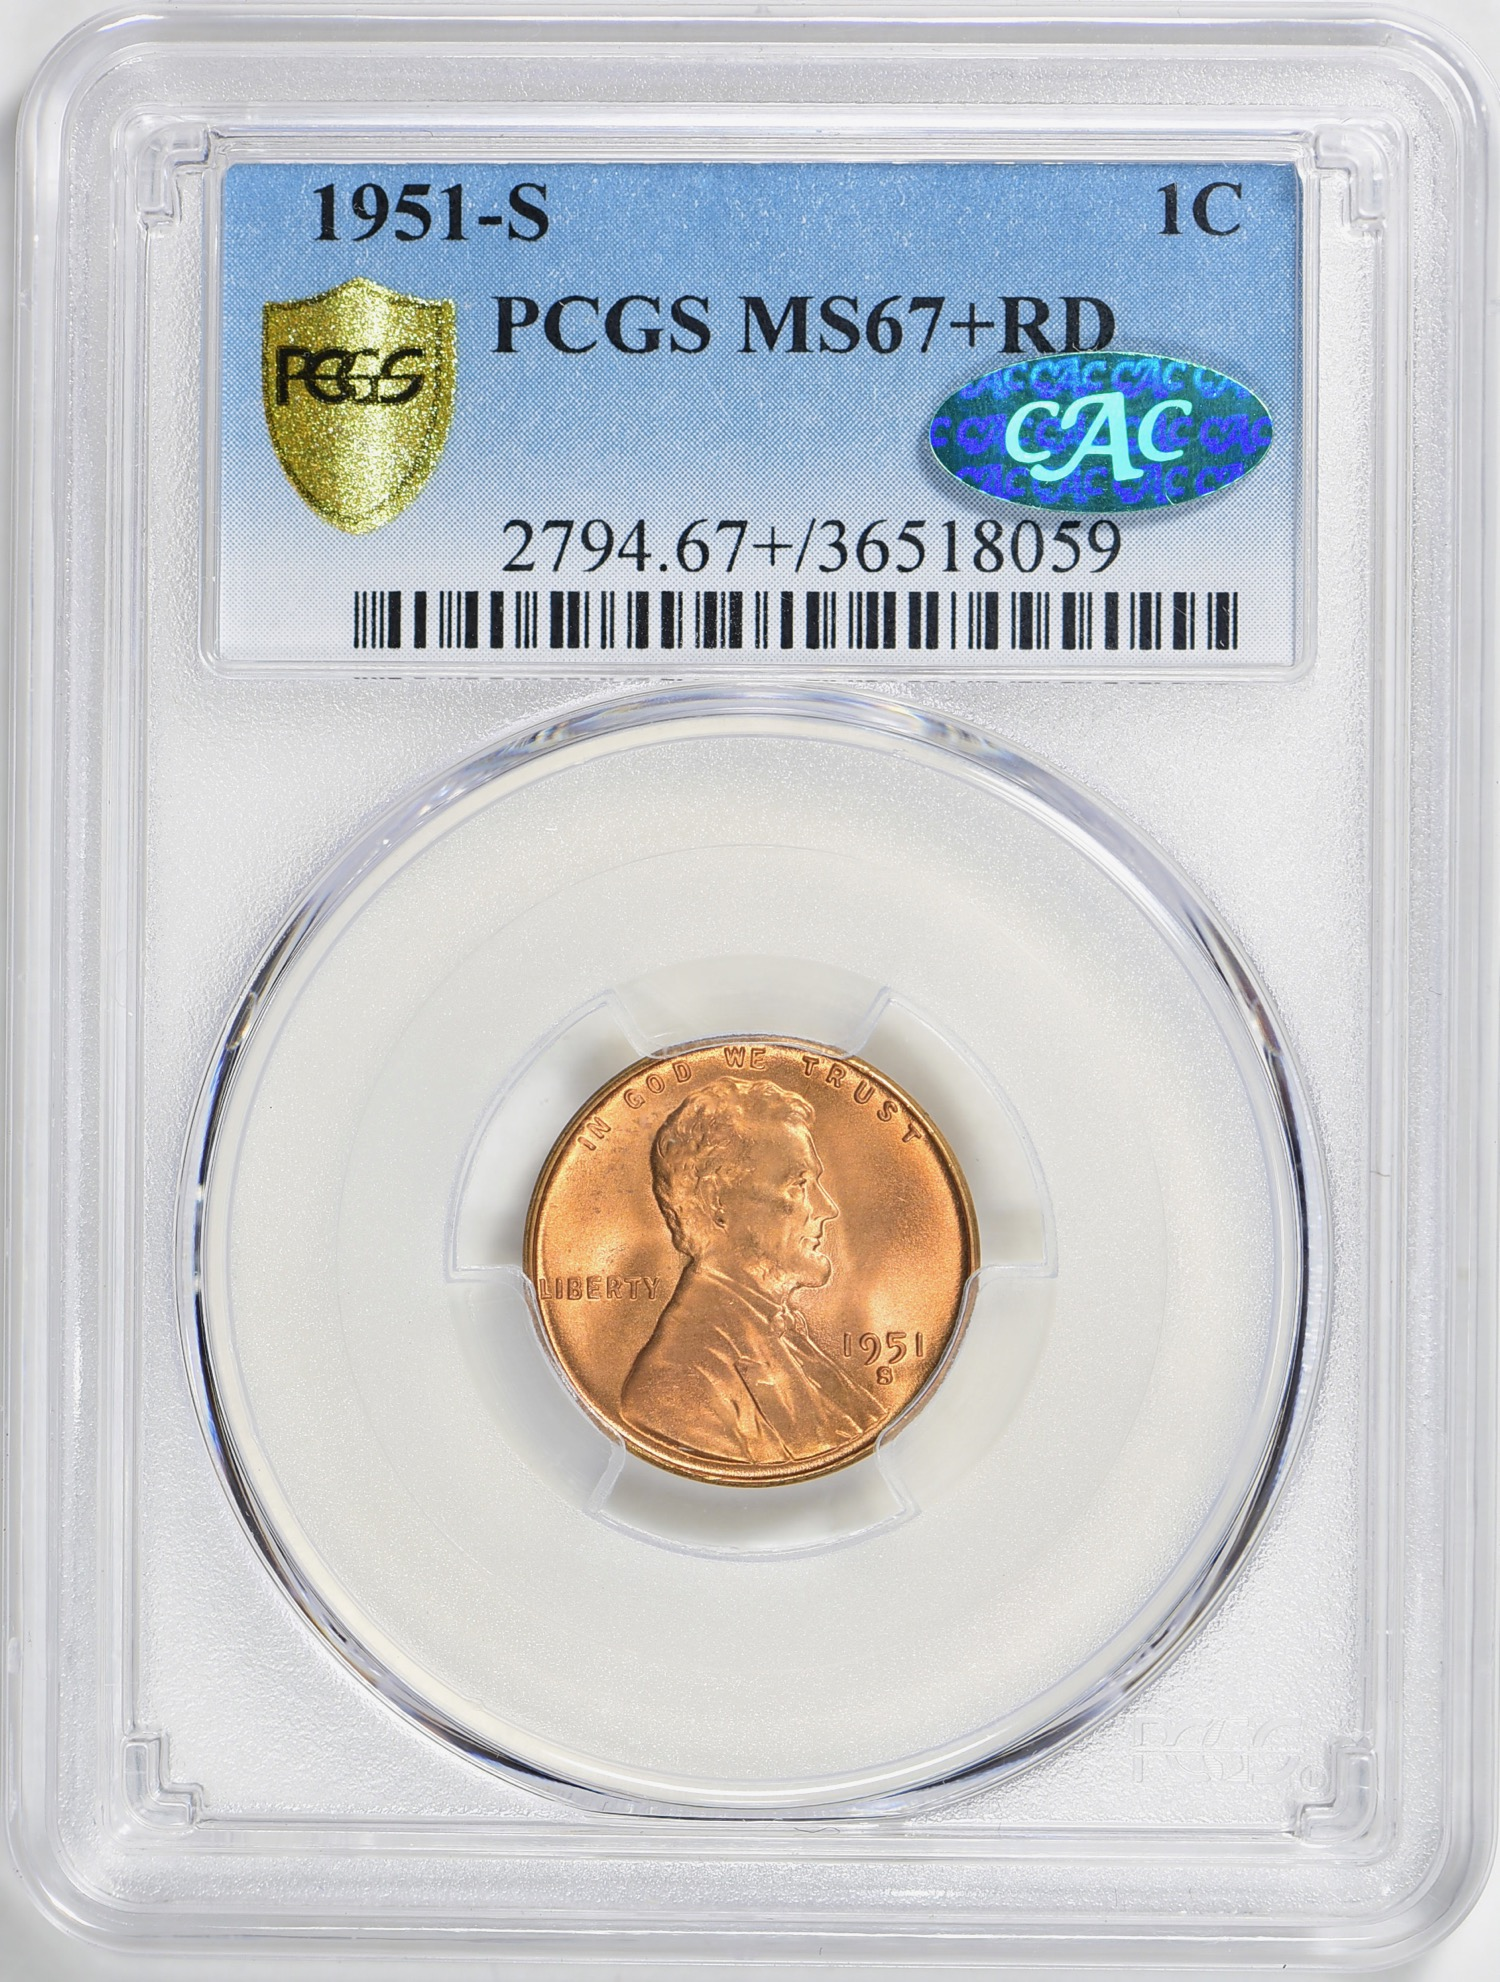 1951-S MS67+RD CAC - Acquired 3.24.19 GreatCollections. Replaces a 67RD CAC. Another top pop CAC for the registry set. CC appreciative that True View images are becoming the norm. CC always send coins off for pictures and a reholder when PCGS runs a special. CC abhors a cracked, scratchy holder.